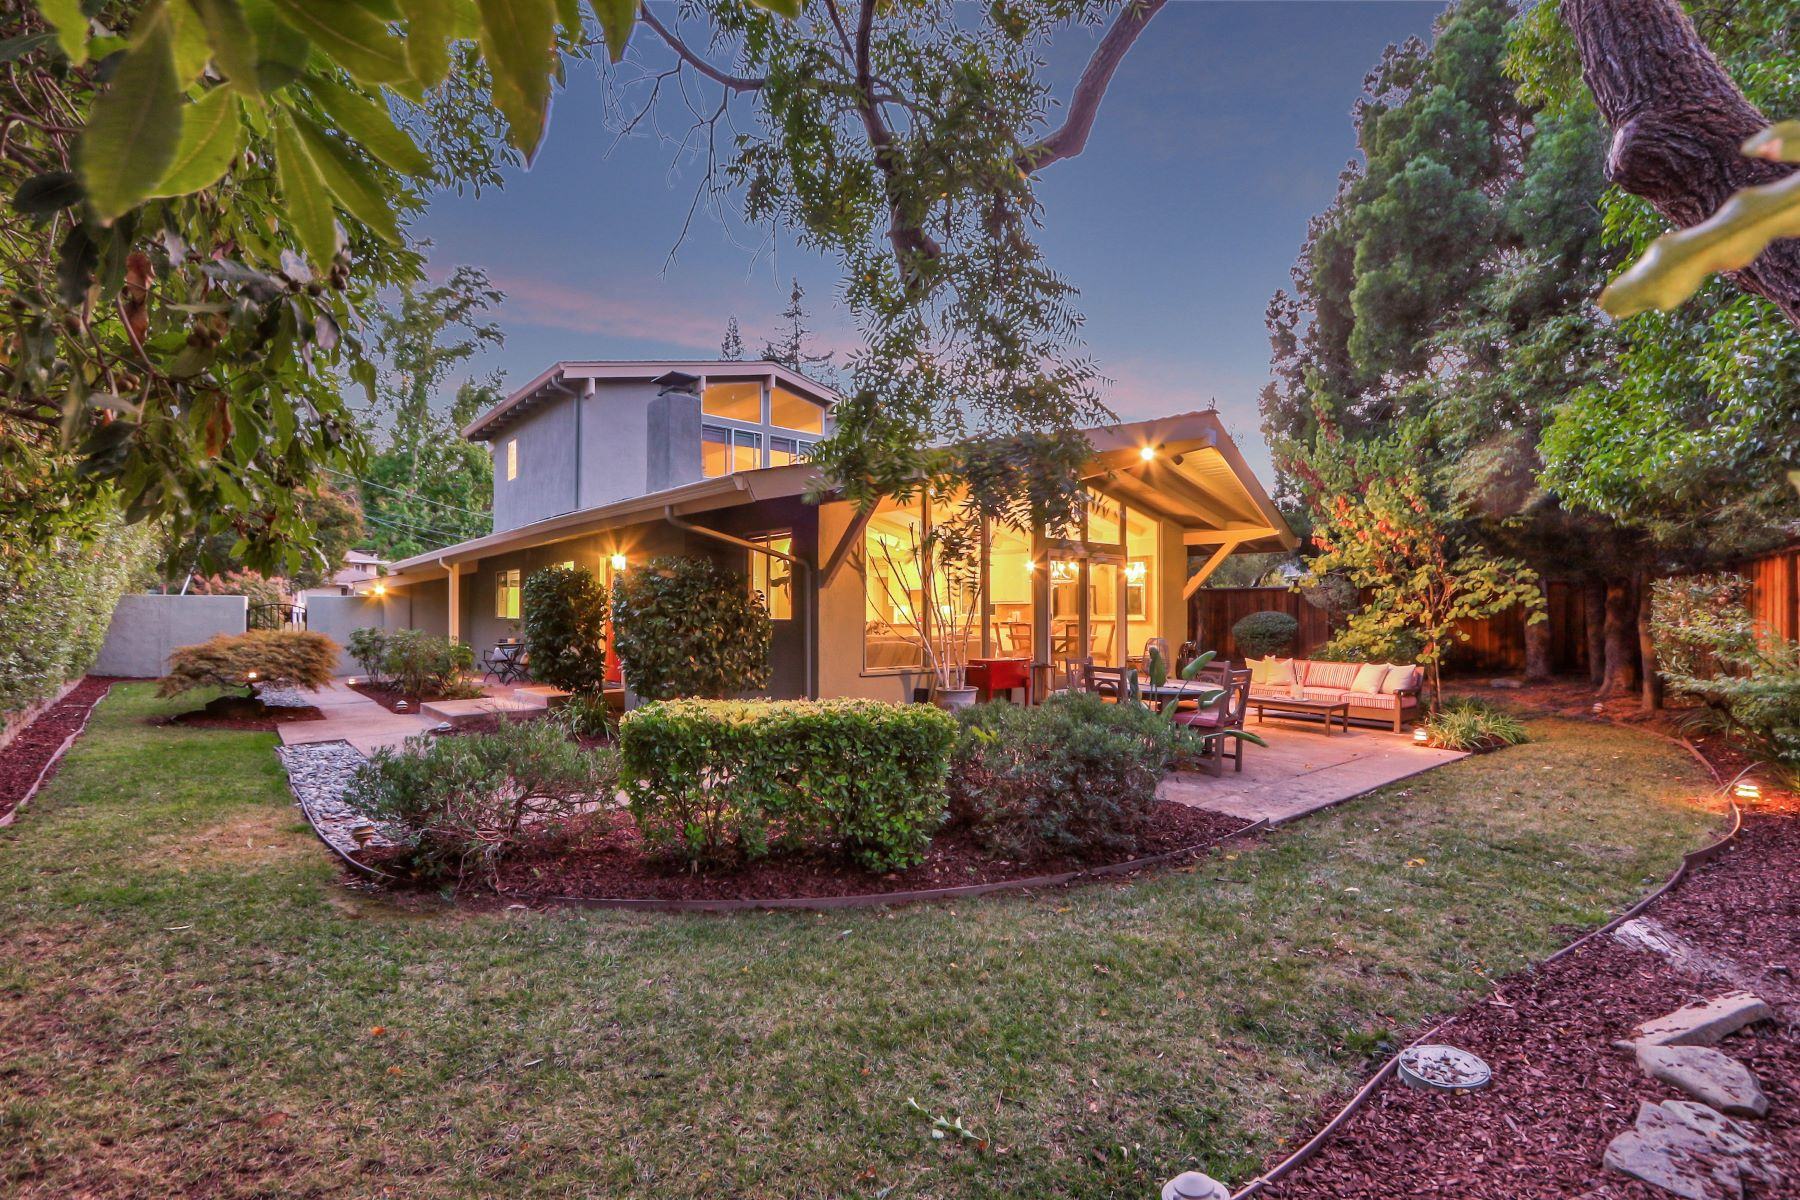 Single Family Homes for Sale at Lovely Los Gatos Home! 251 Loma Alta Drive Los Gatos, California 95030 United States